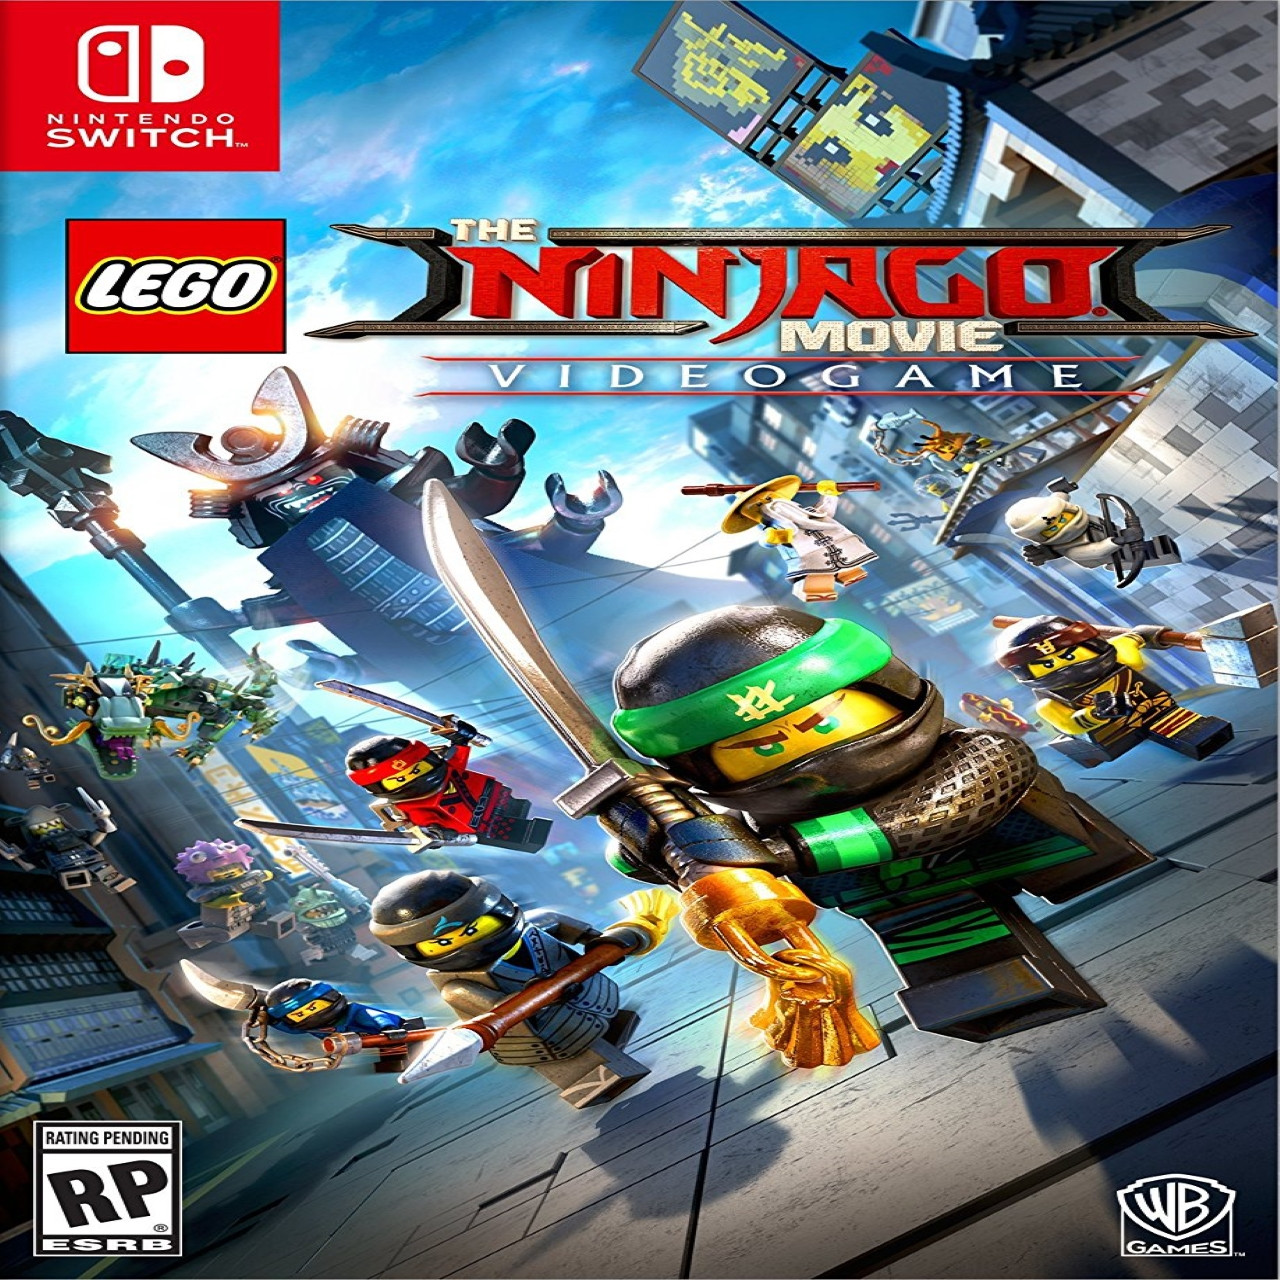 The LEGO Ninjago Movie Video Game SUB Nintendo Switch